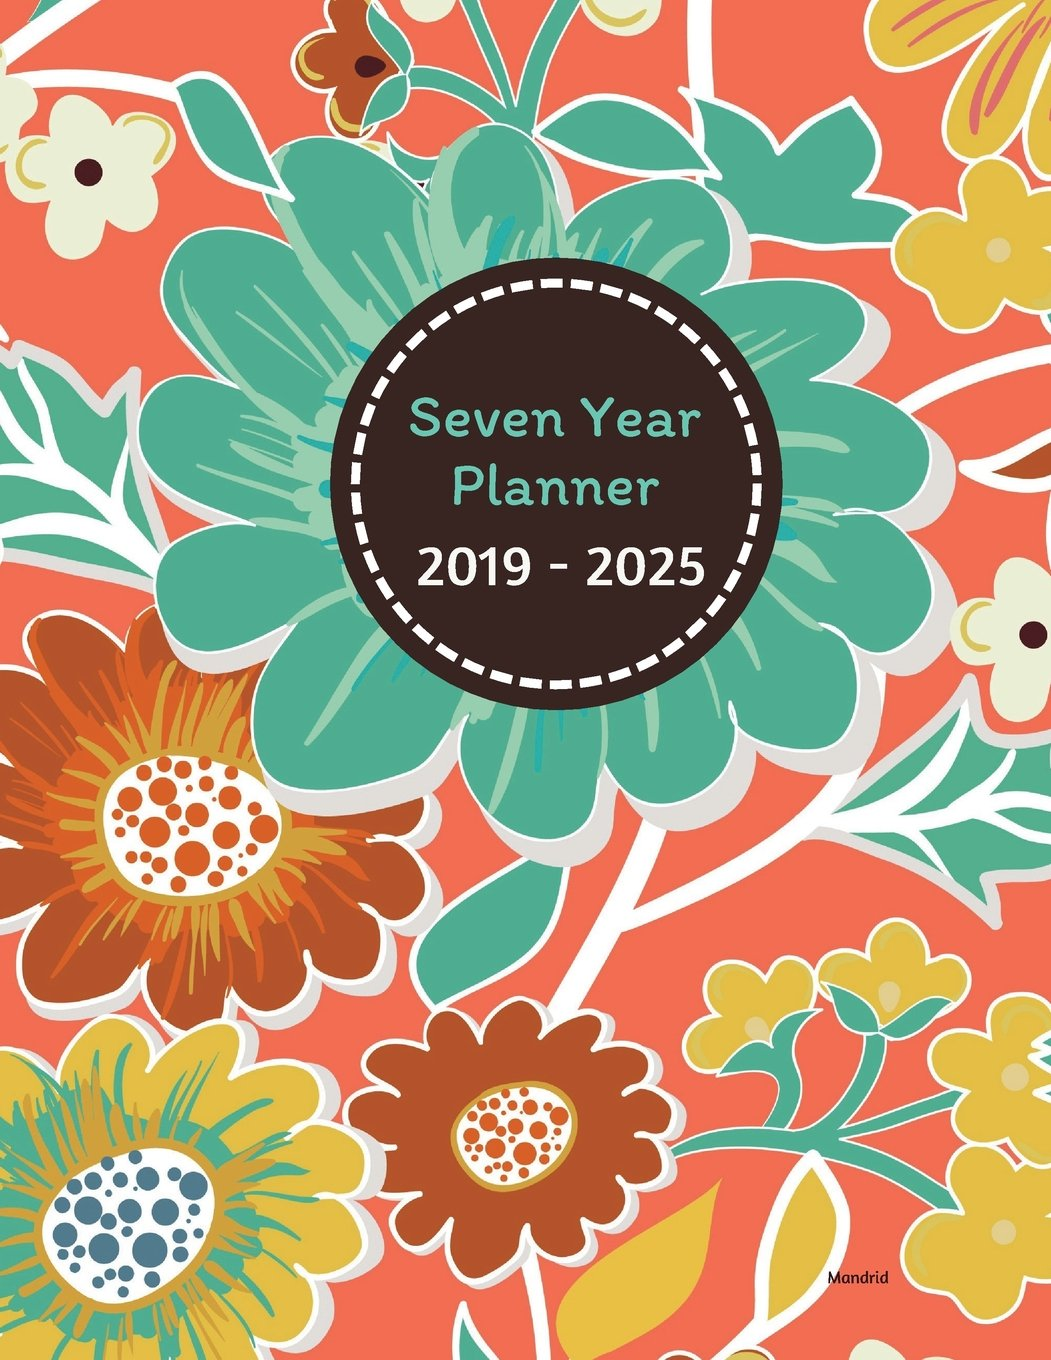 Download Seven Year Planner 2019 - 2025 Mandrid: 2019-2025 Monthly Schedule Organizer – Agenda Planner for the next SEVEN YEARS/84 months calendar – 8.5 x 11 inches (7 Year Diary/7 Year Calendar/Logbook) PDF